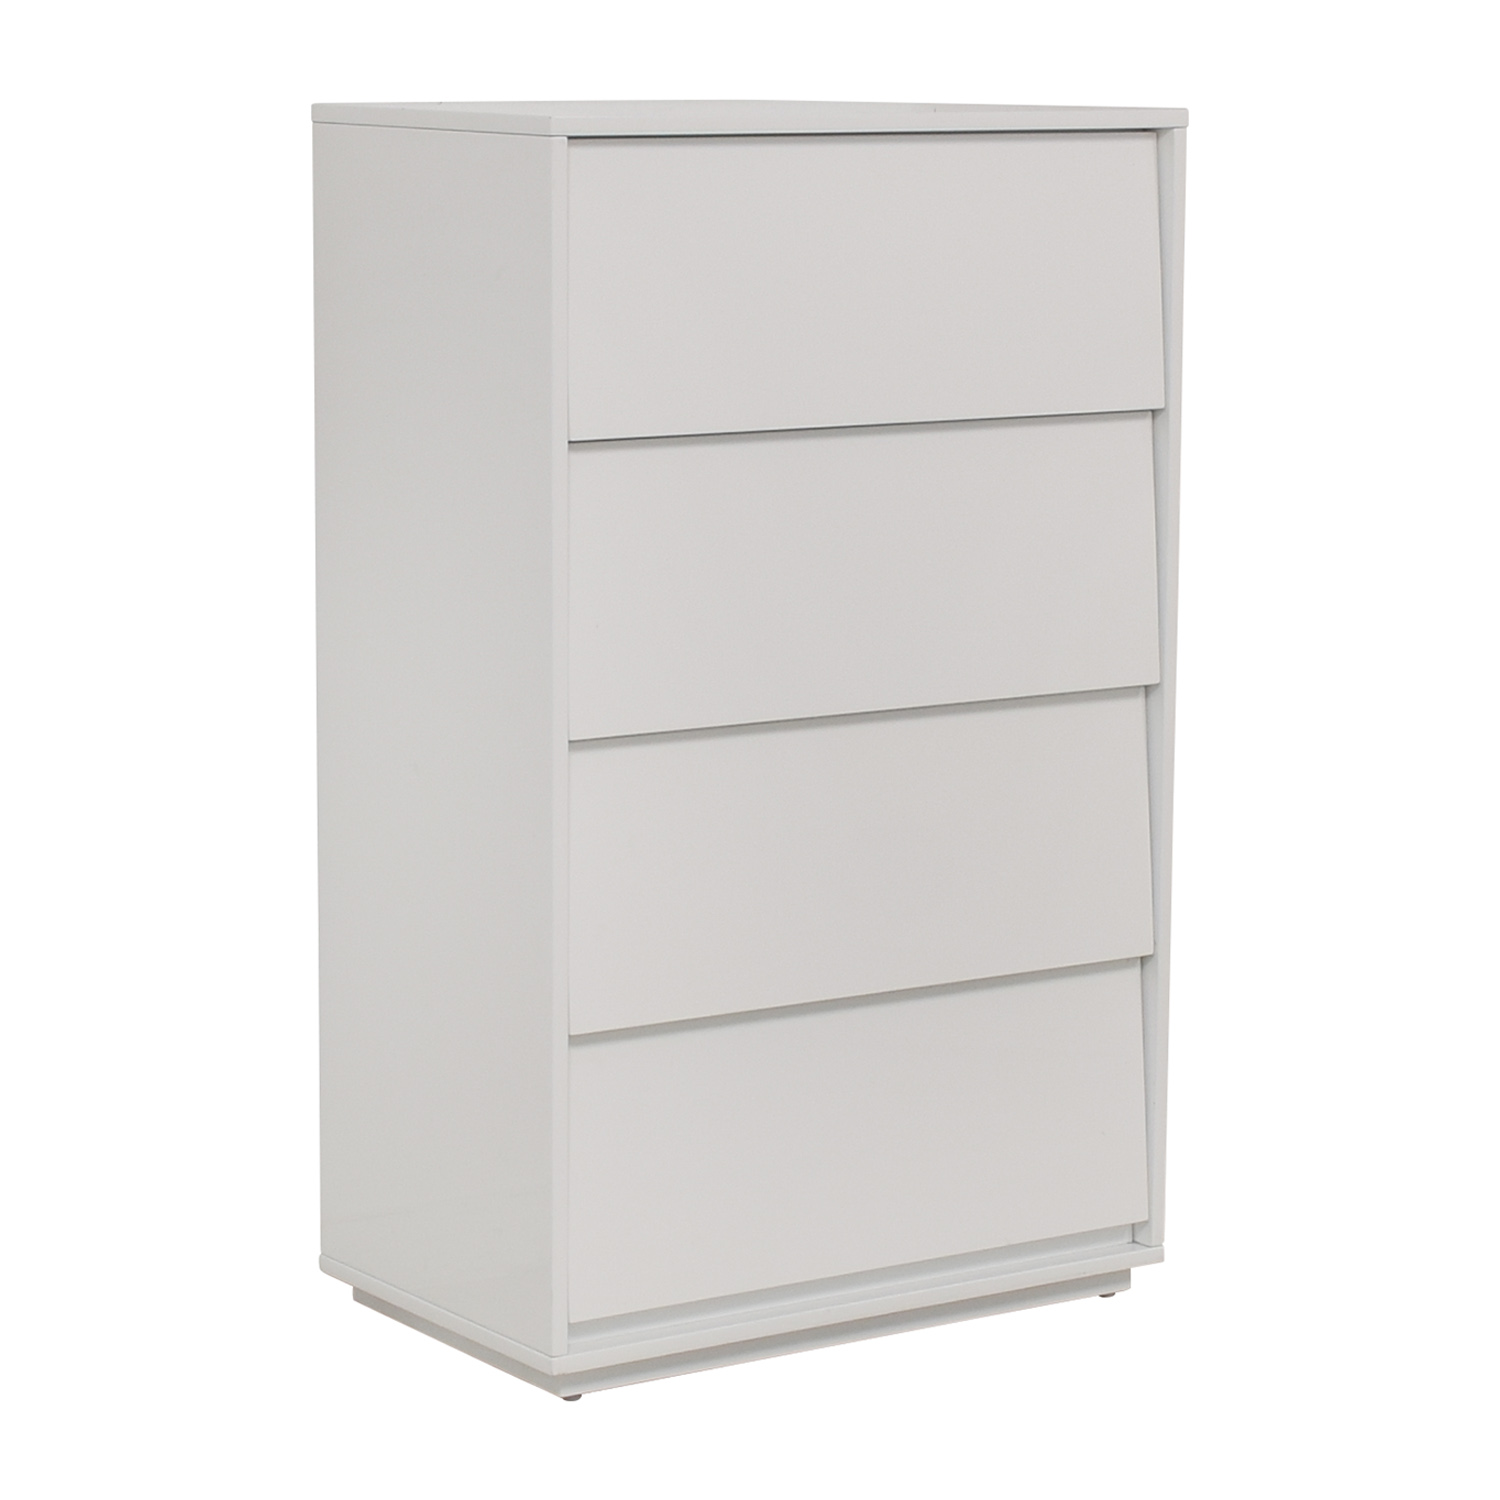 CB2 CB2 Gallery White Four Drawer Tall Chest Dressers